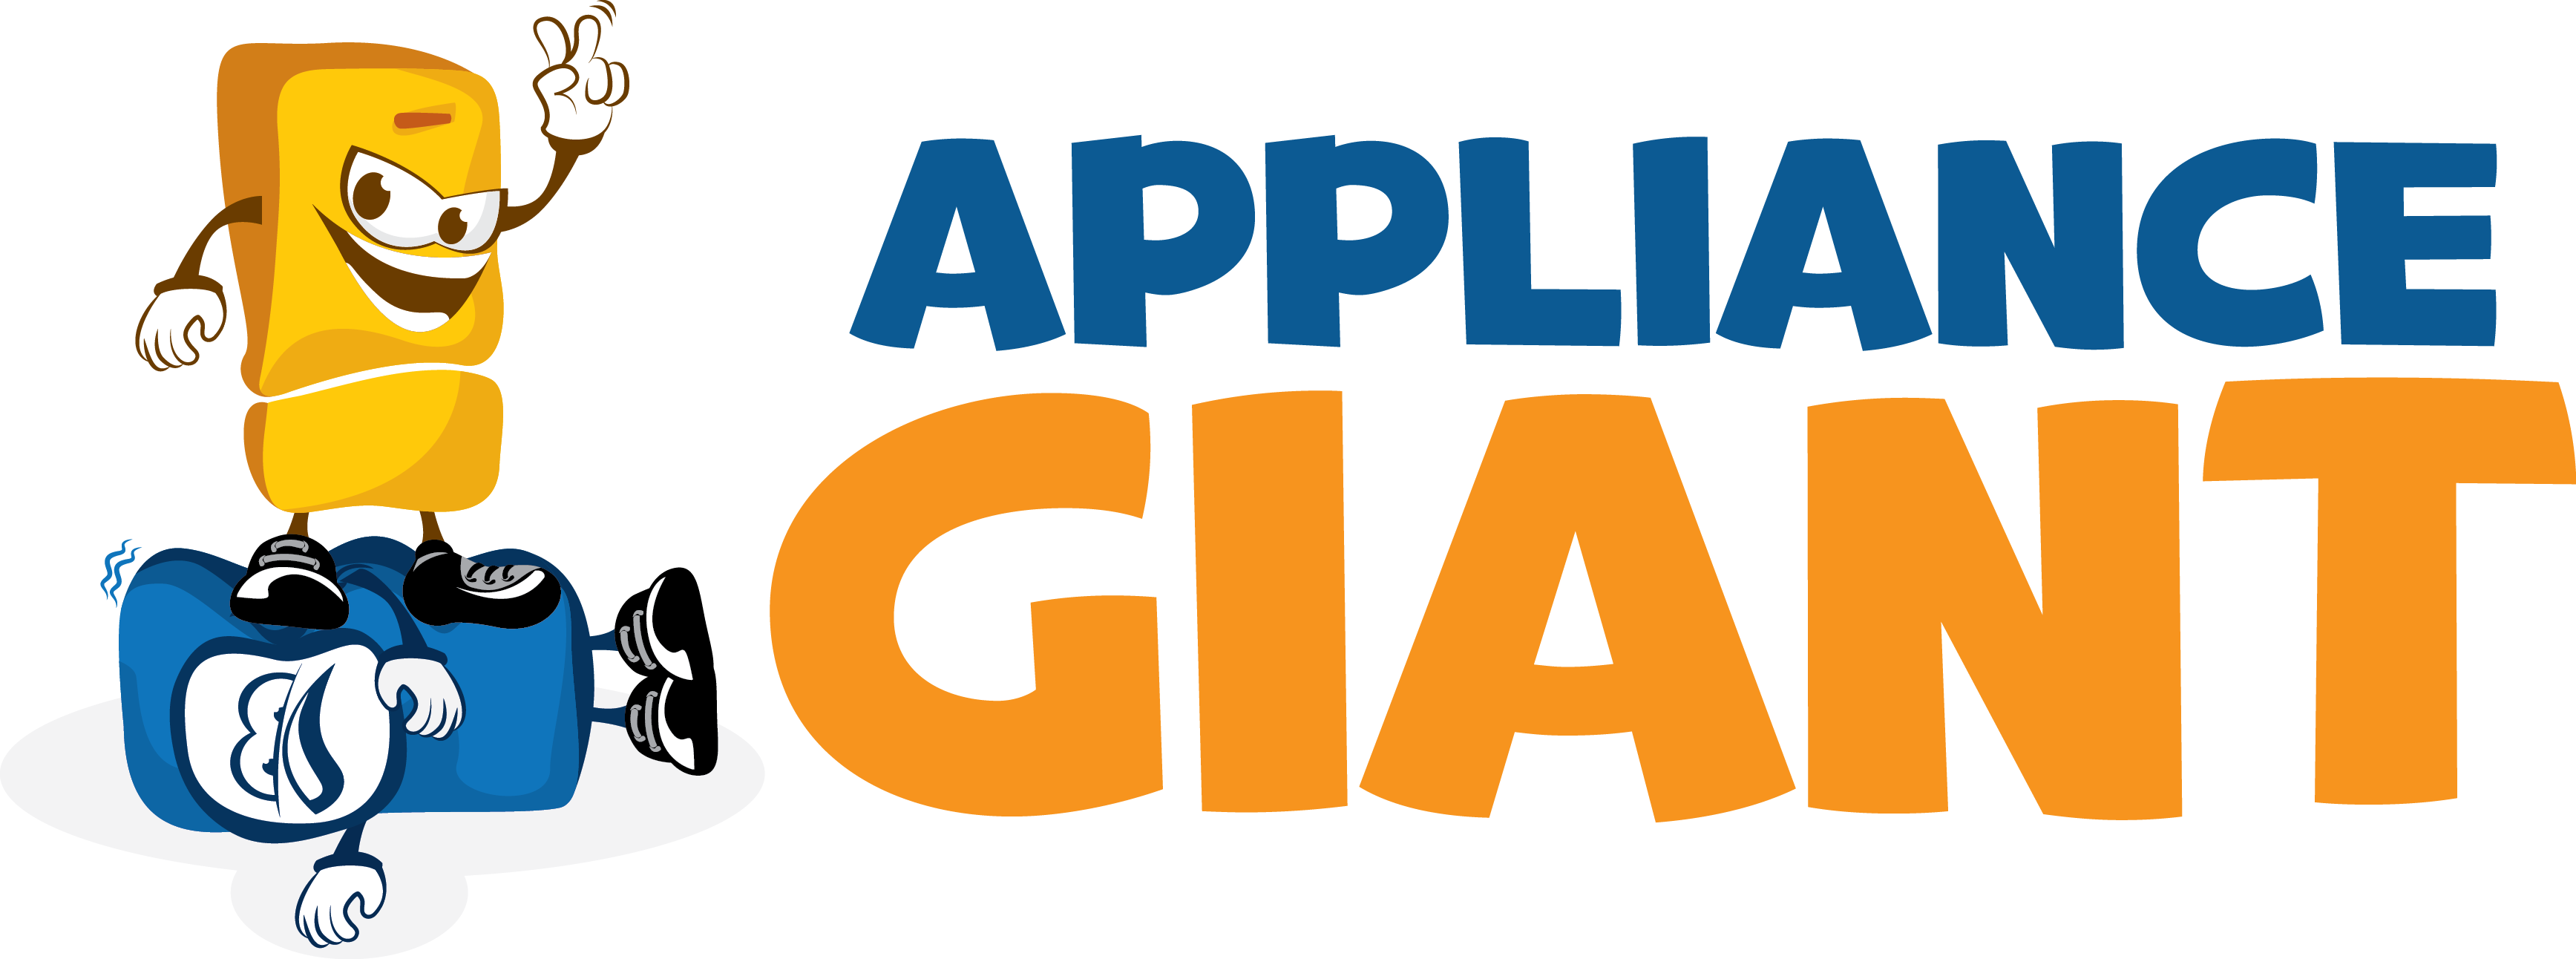 Read Appliance Giant Reviews